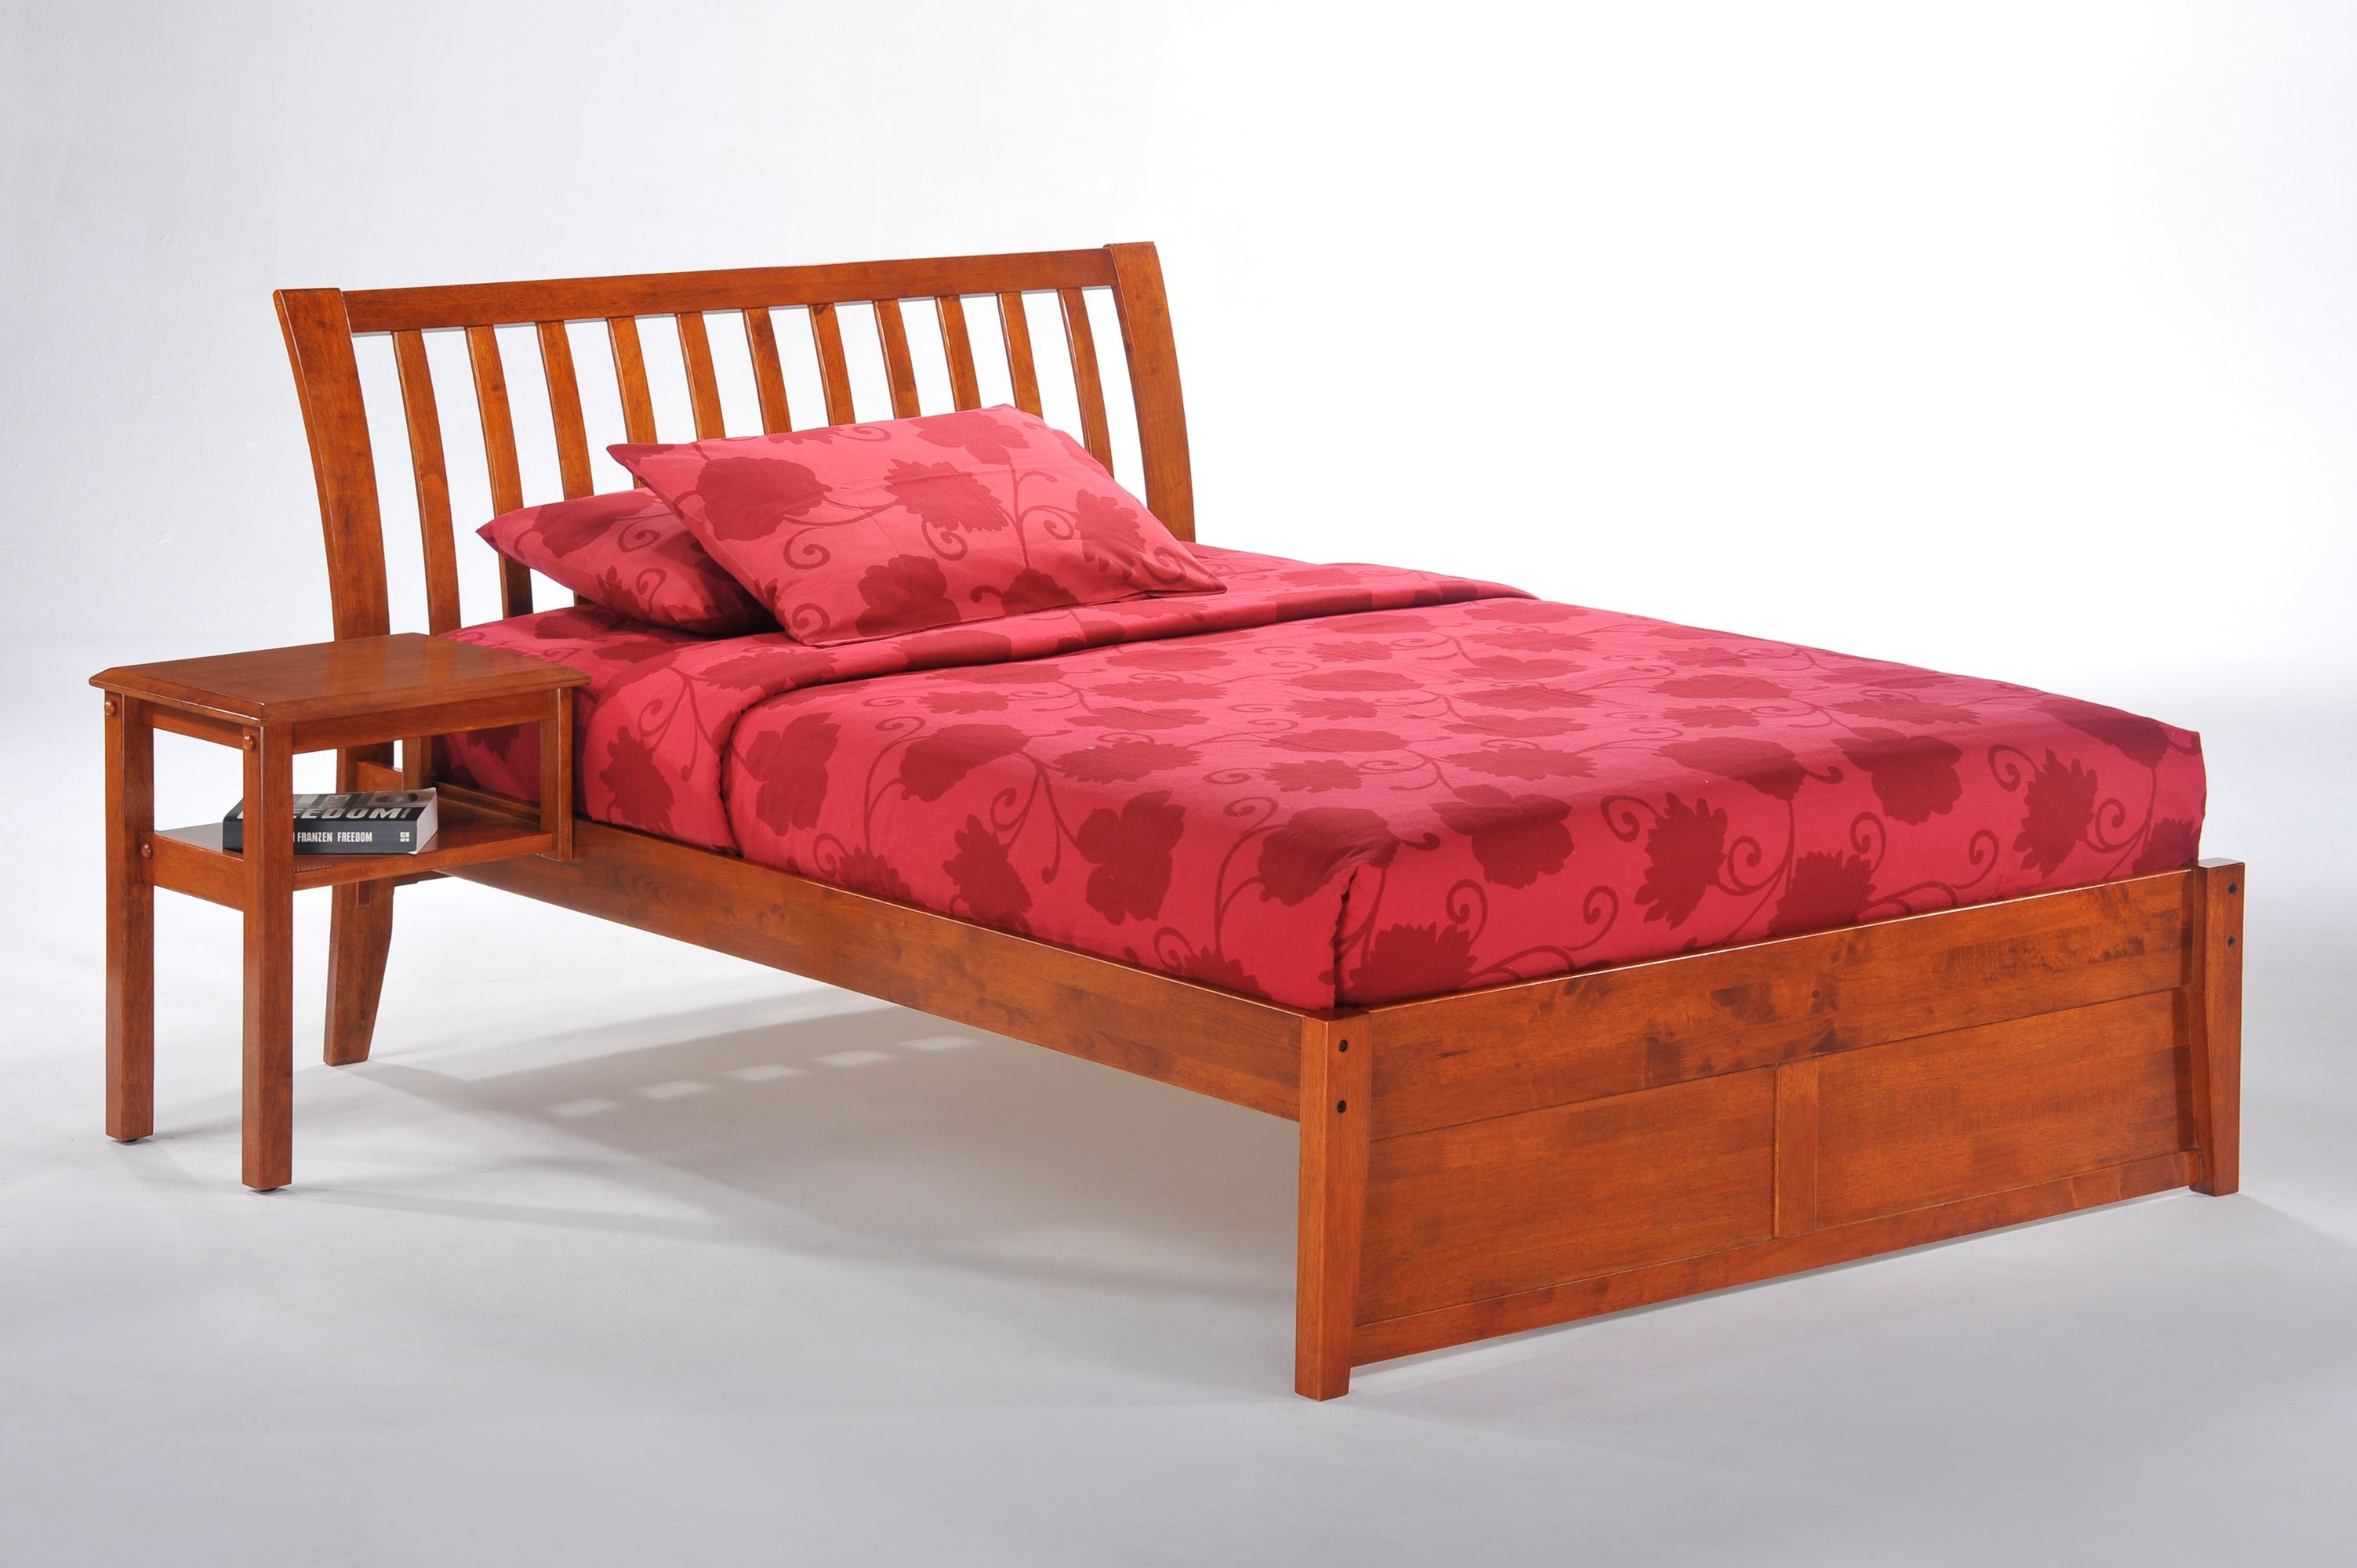 The Clove HookOn Nightstand shown with the Nutmeg K